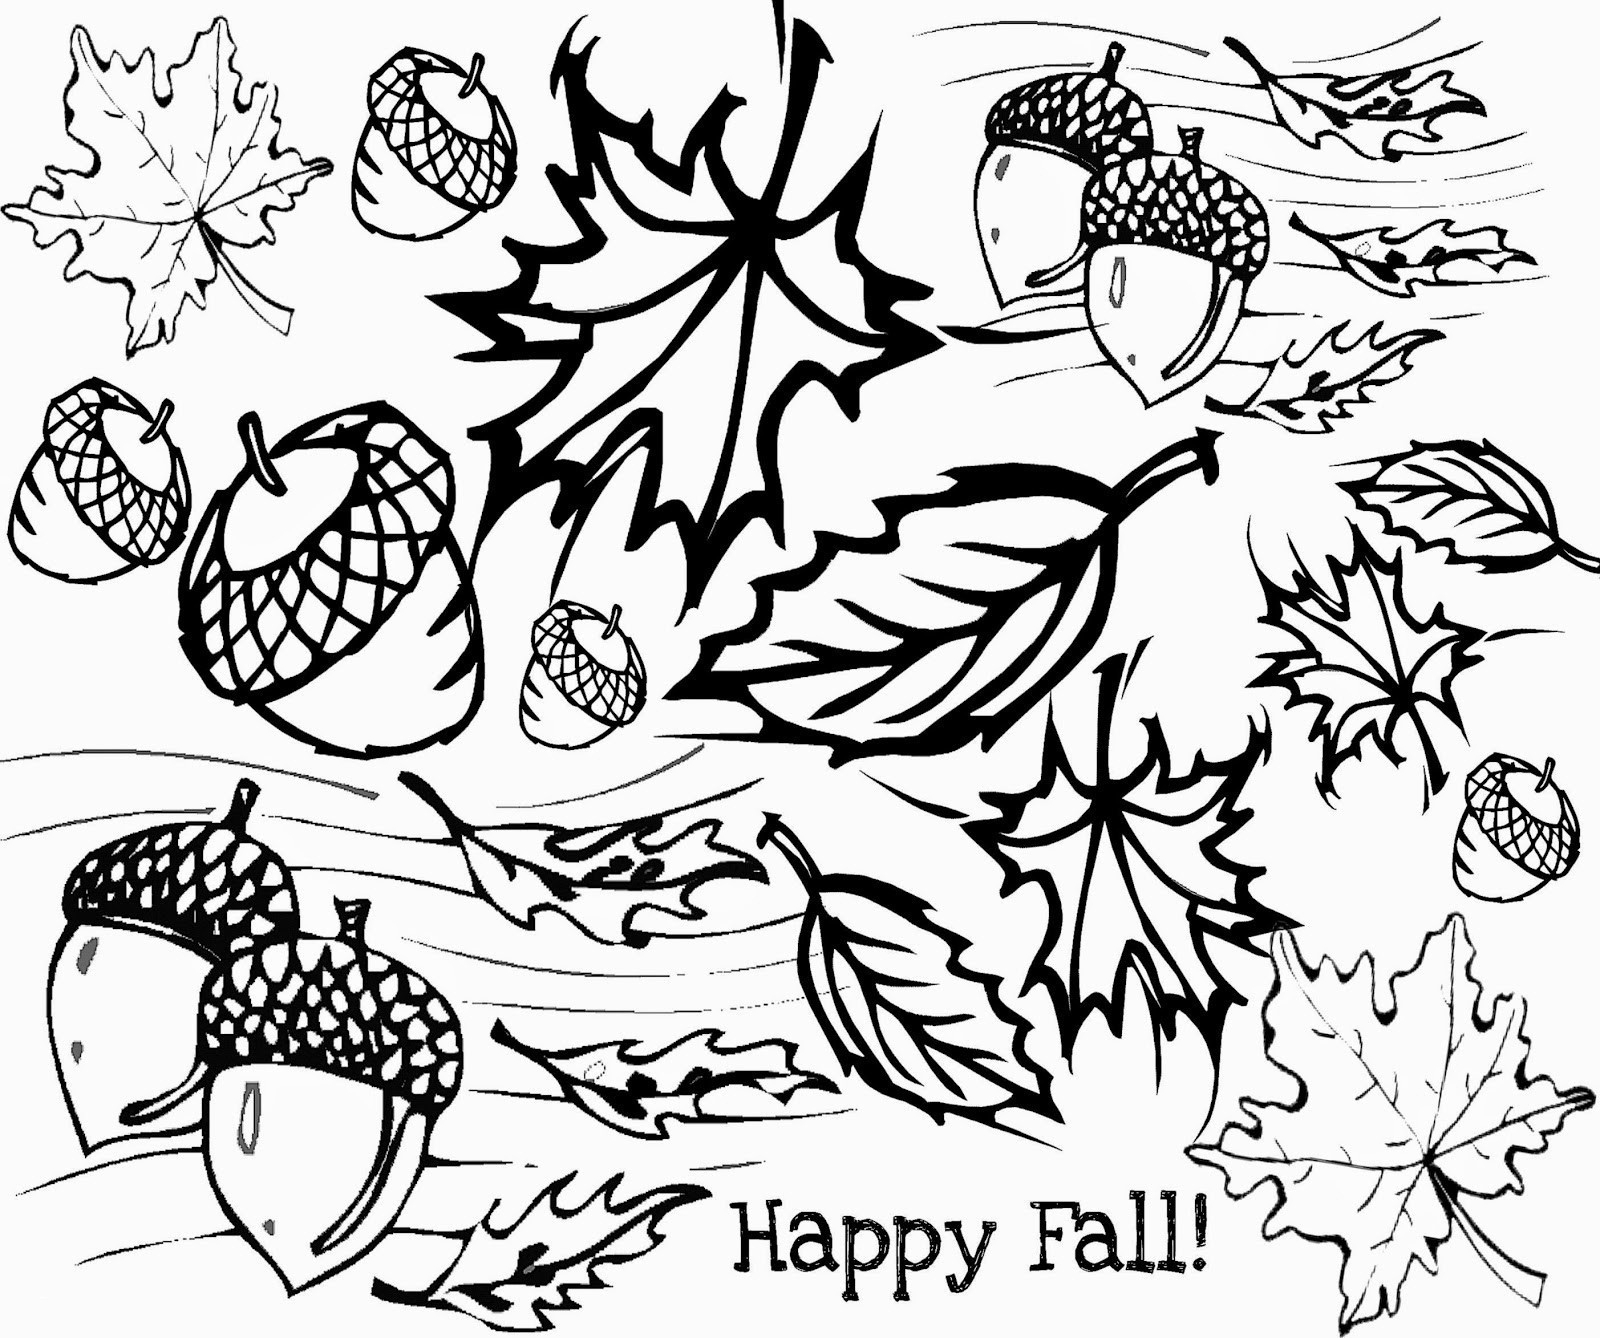 fall flowers coloring pages Collection-Fall Coloring Sheets for Adults Elegant Fall Coloring Pages Adults Luxury Fall Coloring Pages 0d Page 19-d